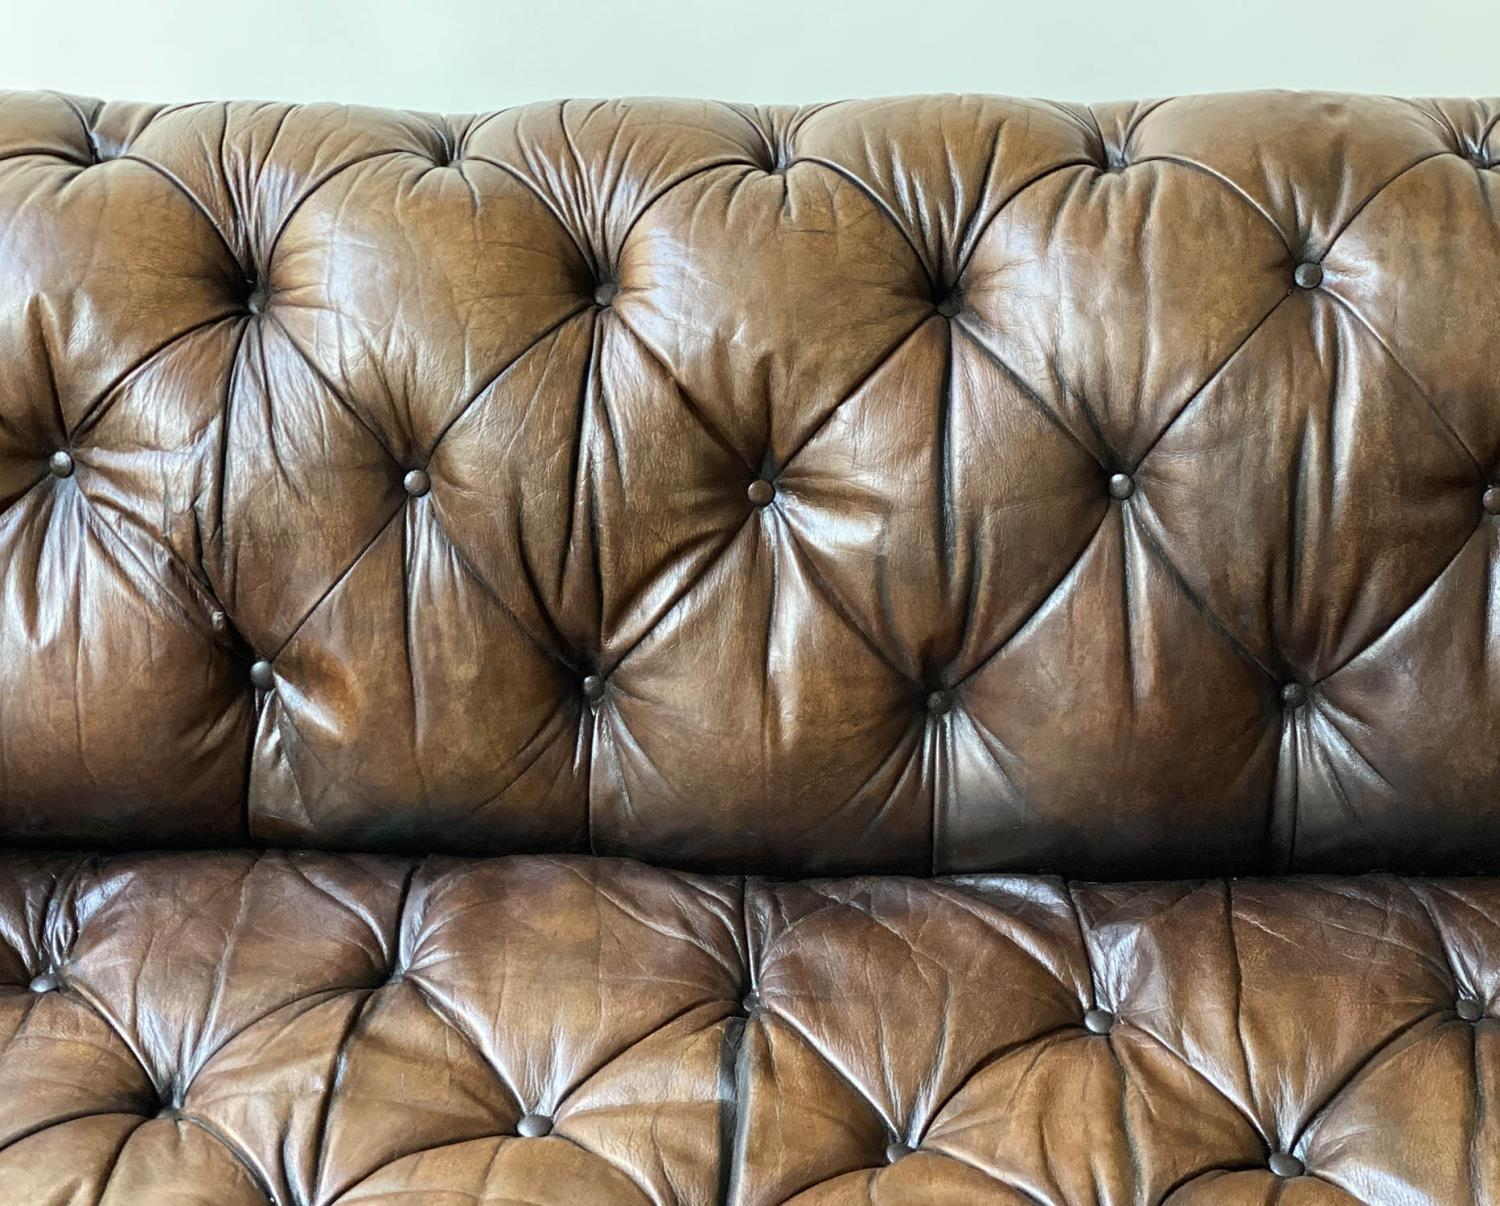 CHESTERFIELD SOFA, early 20th century Edwardian aged and faded brown leather with horsehair buttoned - Image 10 of 10